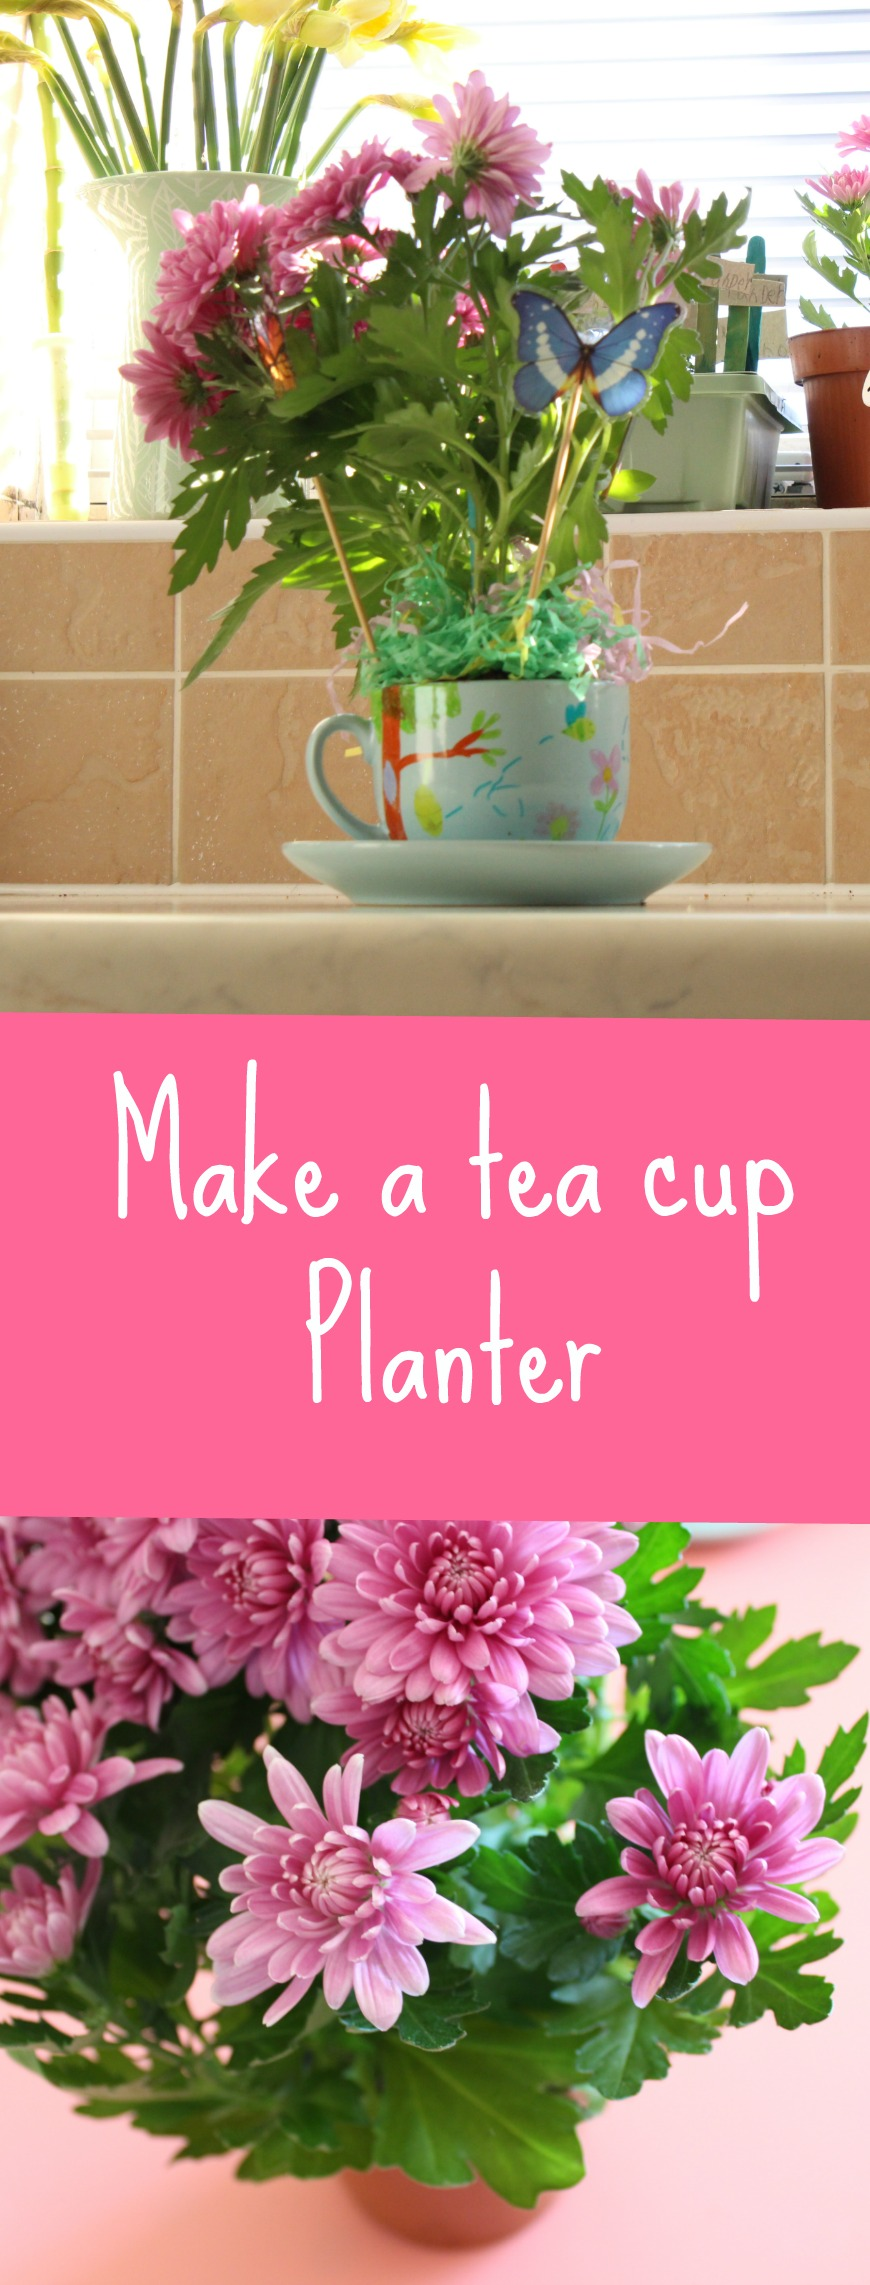 how to make a tea cup planter tutorial